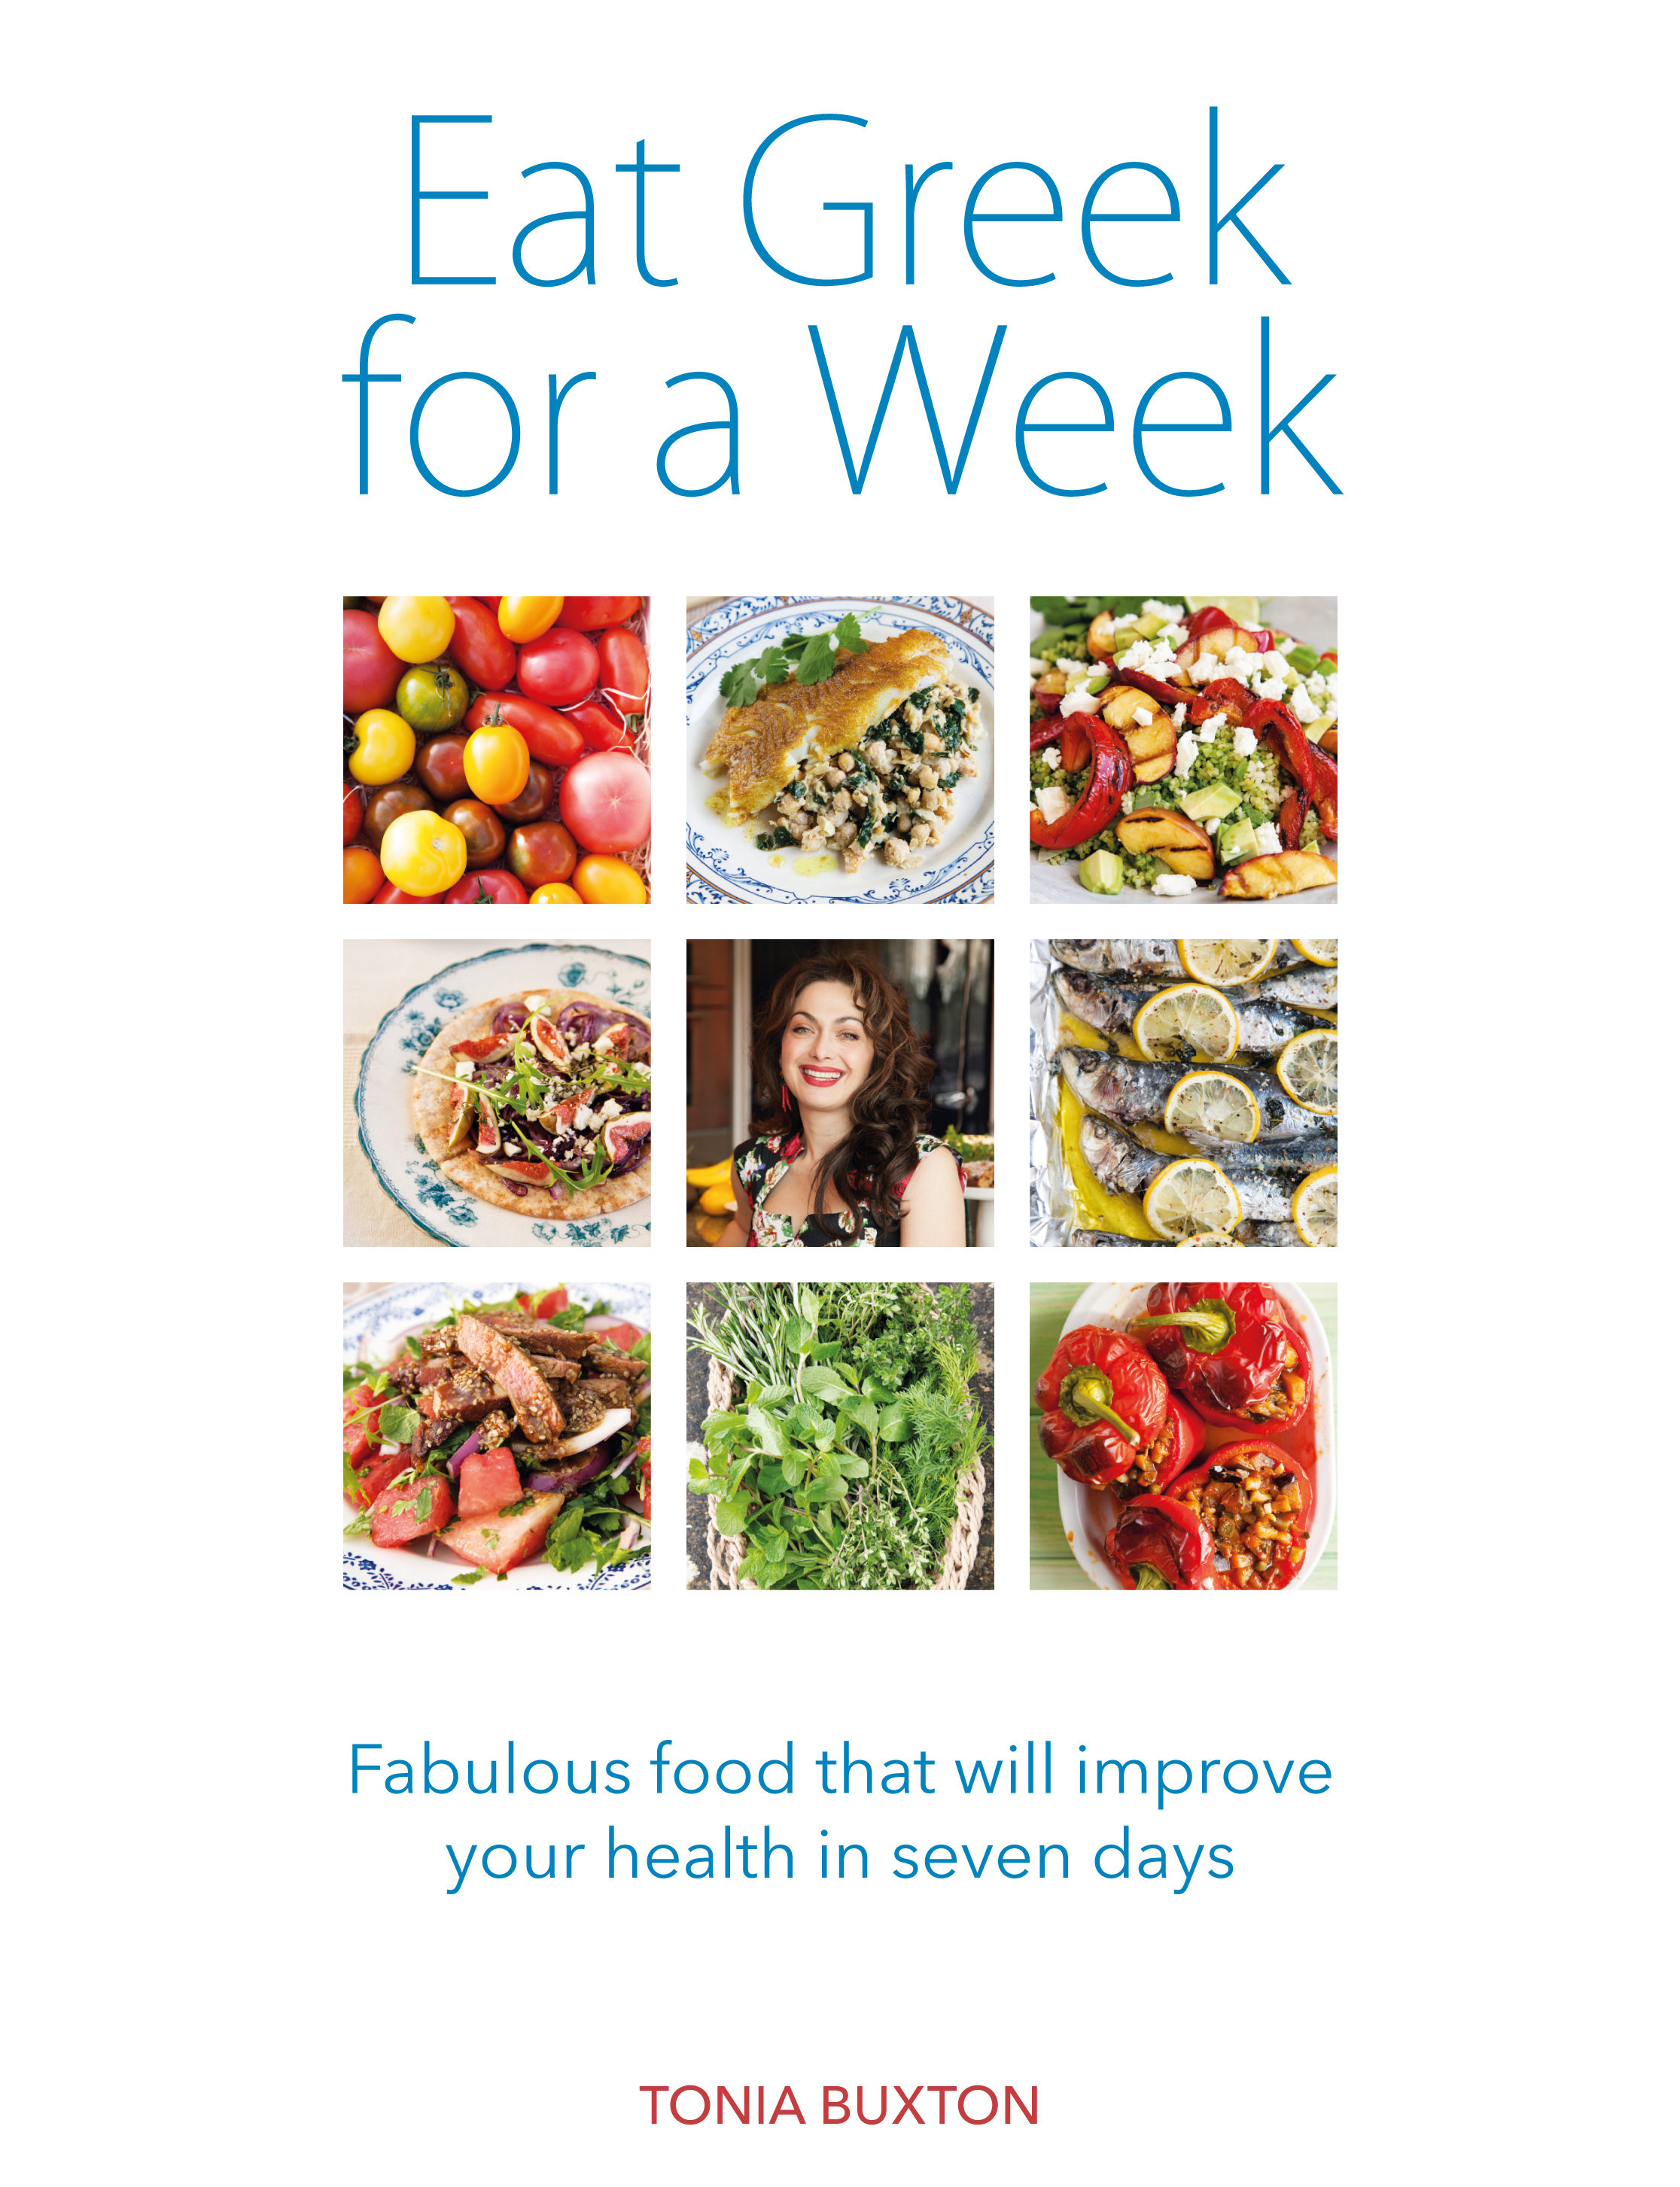 Eat greek for a week ebook tonia buxton descargar libro pdf o eat greek for a week ebook tonia buxton 9781910536360 forumfinder Gallery